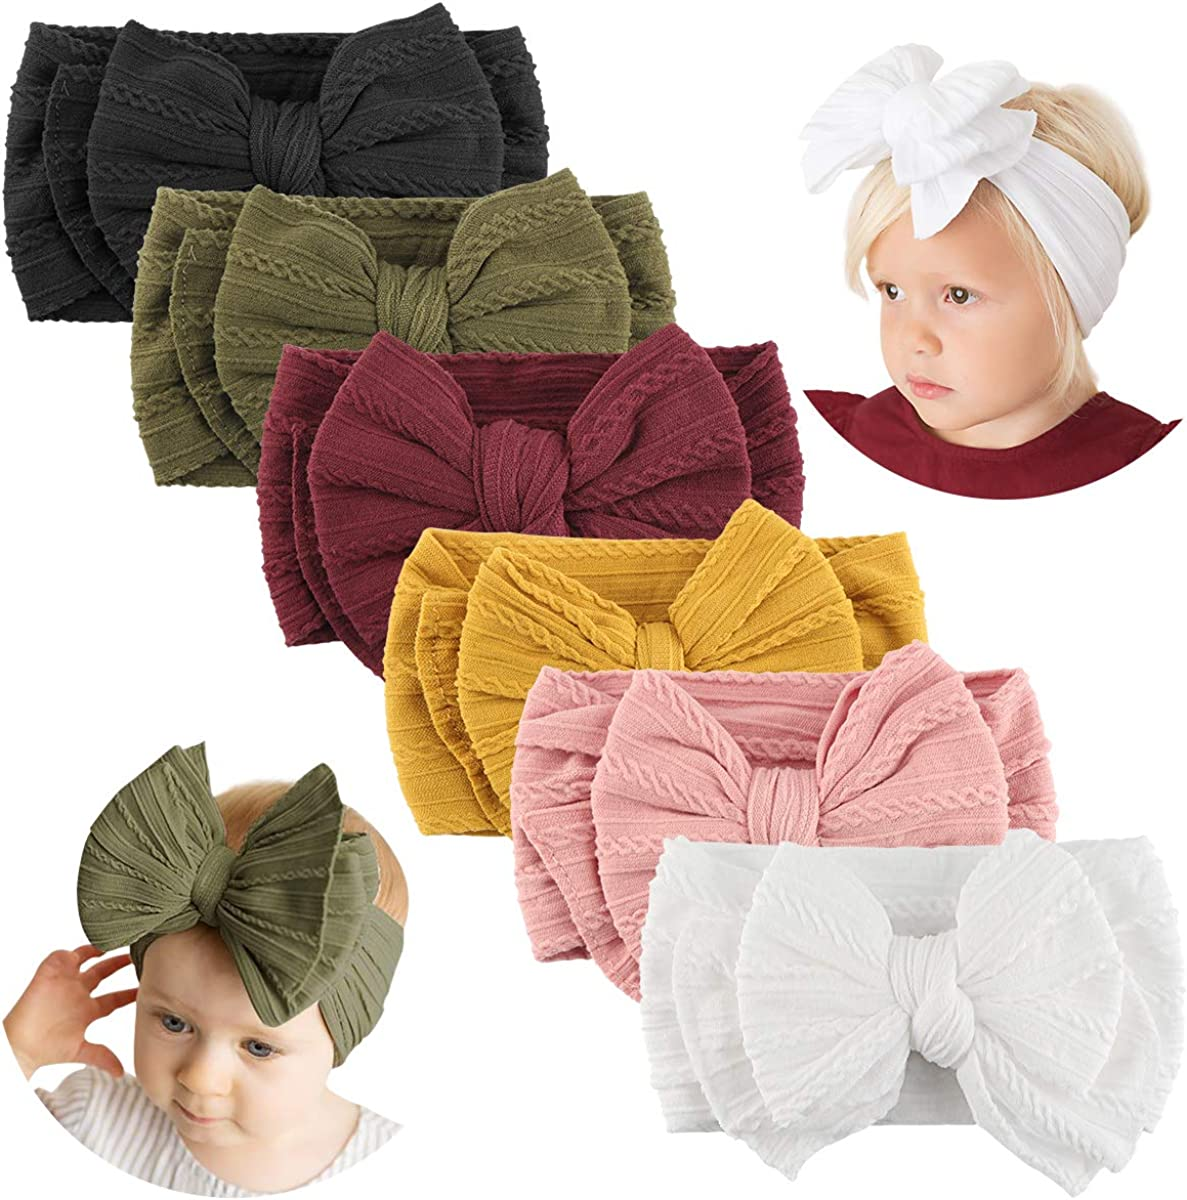 Makone Handmade Baby Headbands with Bows Stretchy Nylon Headbands for...